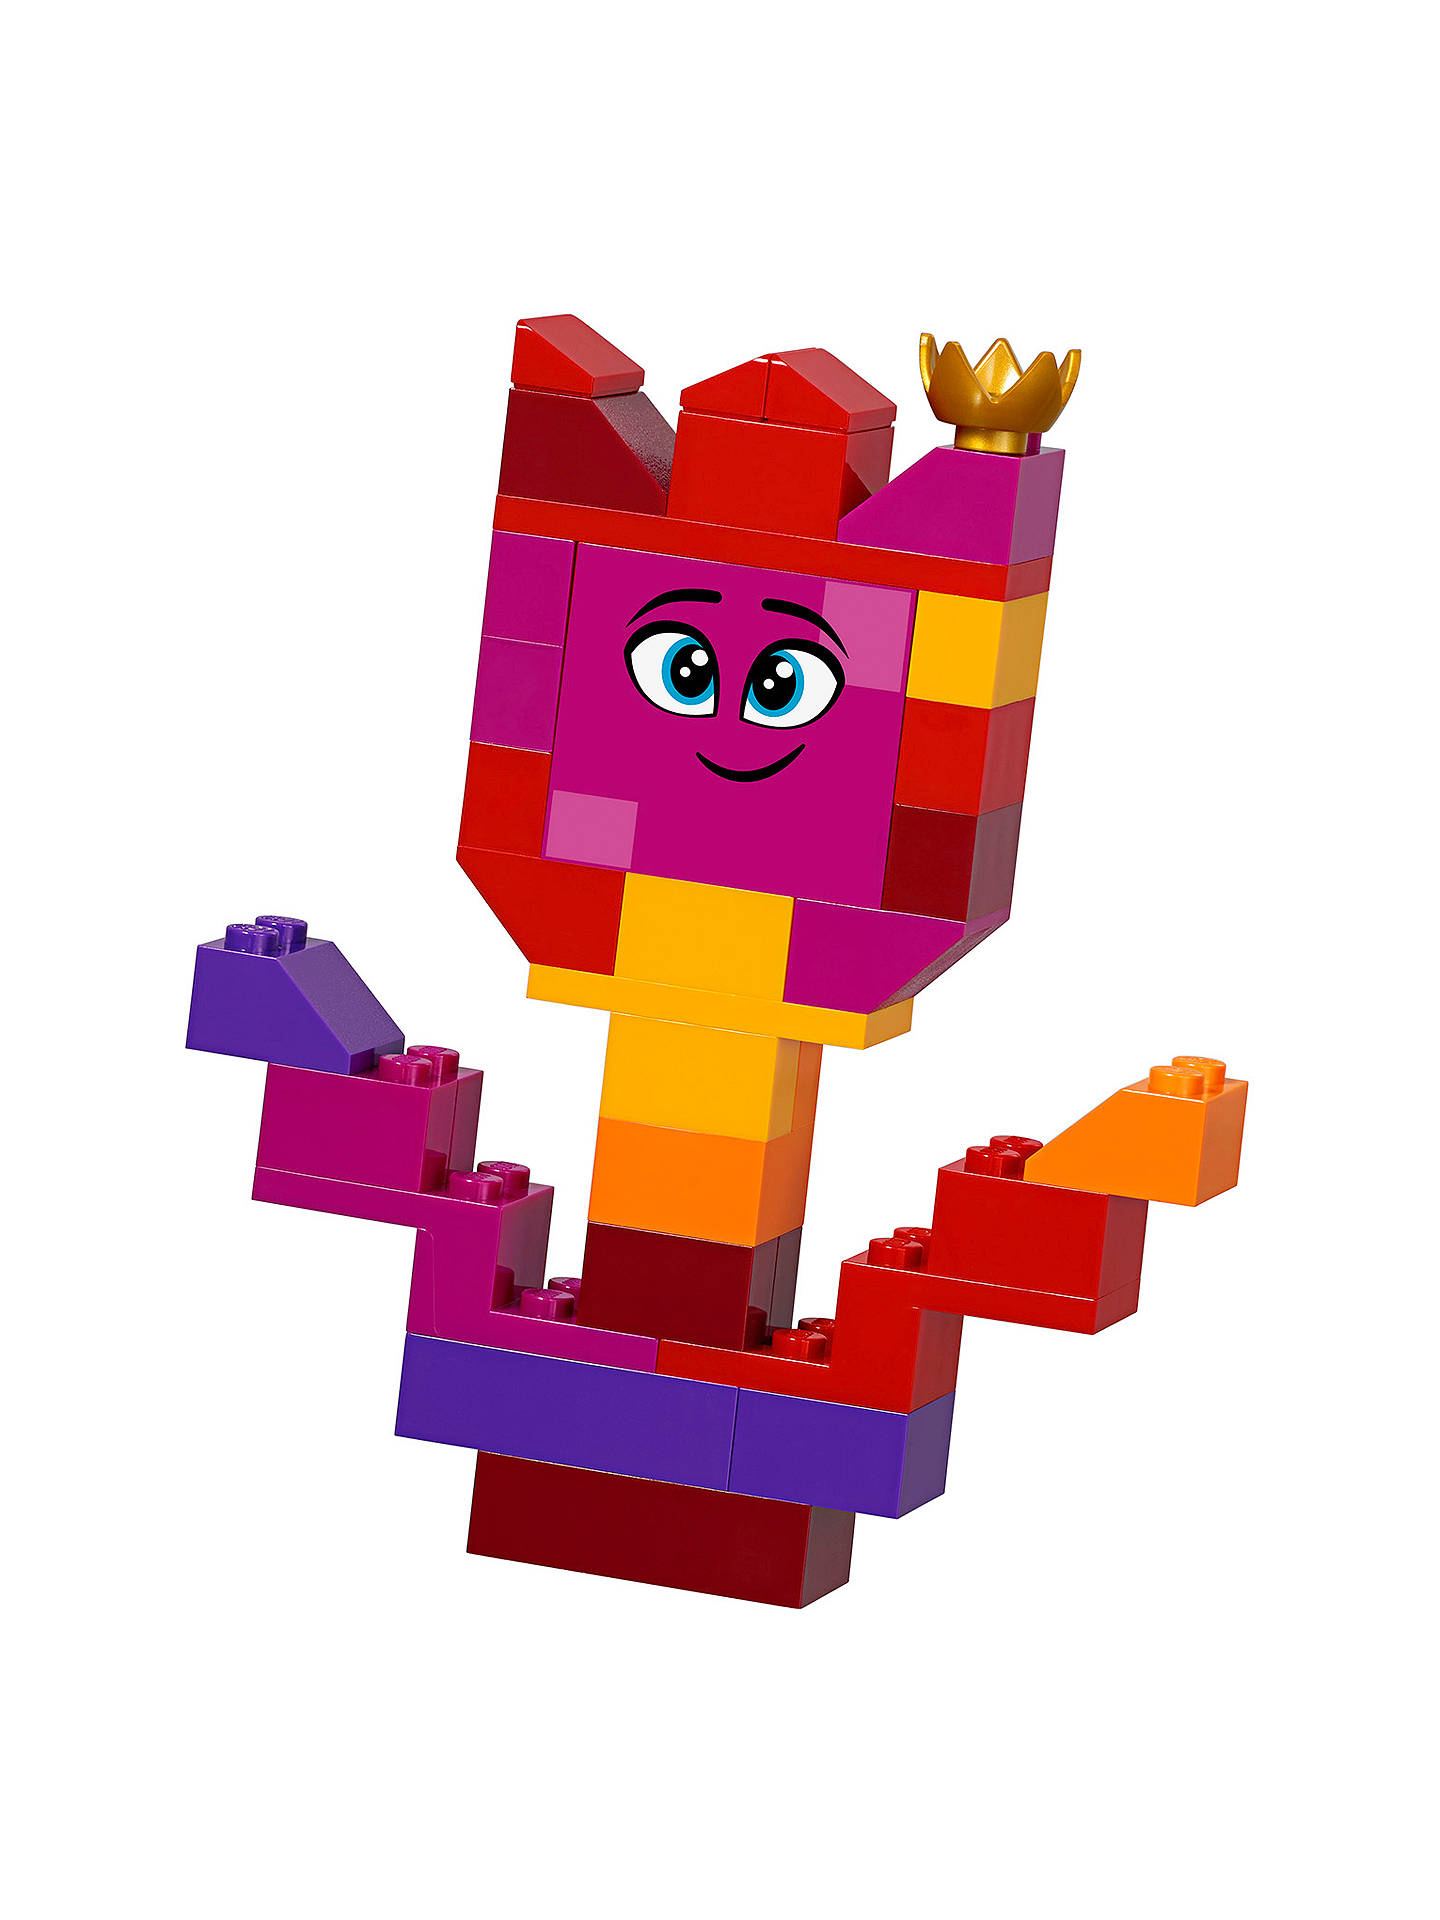 bb4230e28d0 ... Buy LEGO THE LEGO MOVIE 2 70825 Queen Watevra's Build Whatever Box  Construction Toys with Minifigures ...